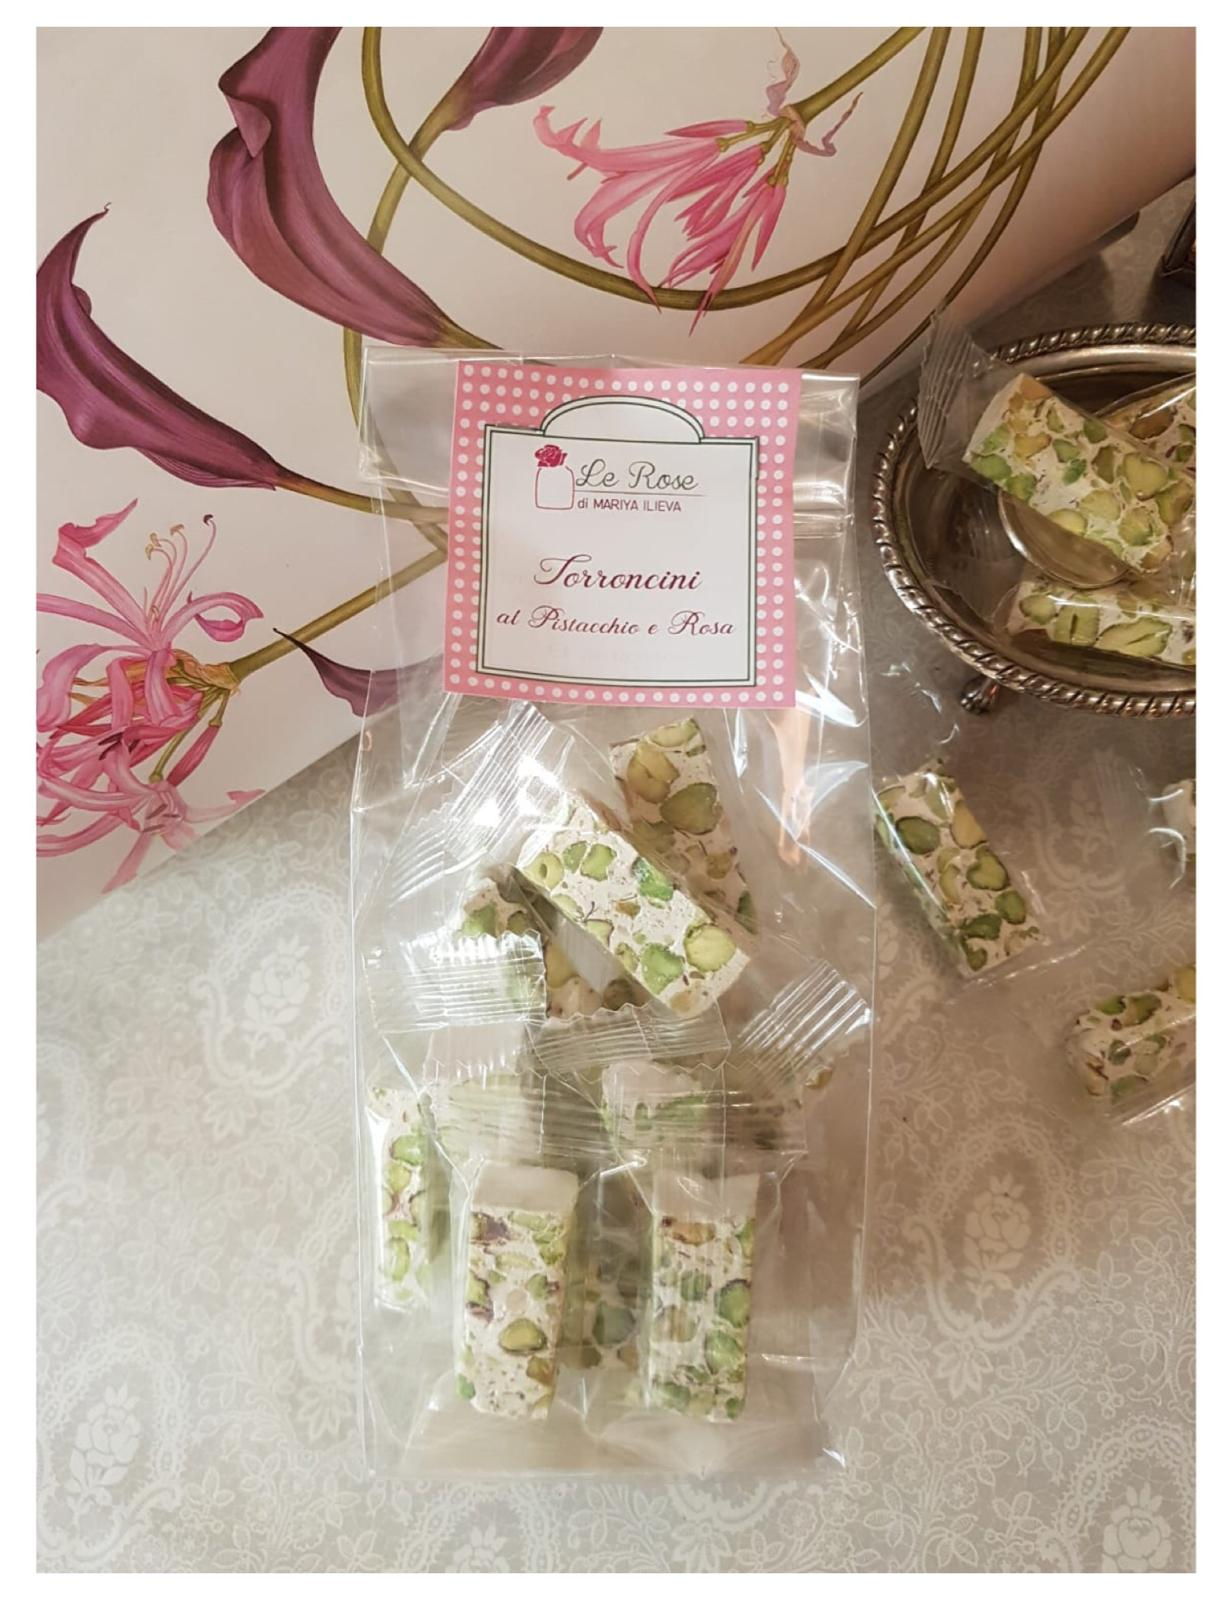 Torroncini with pistachio and roses